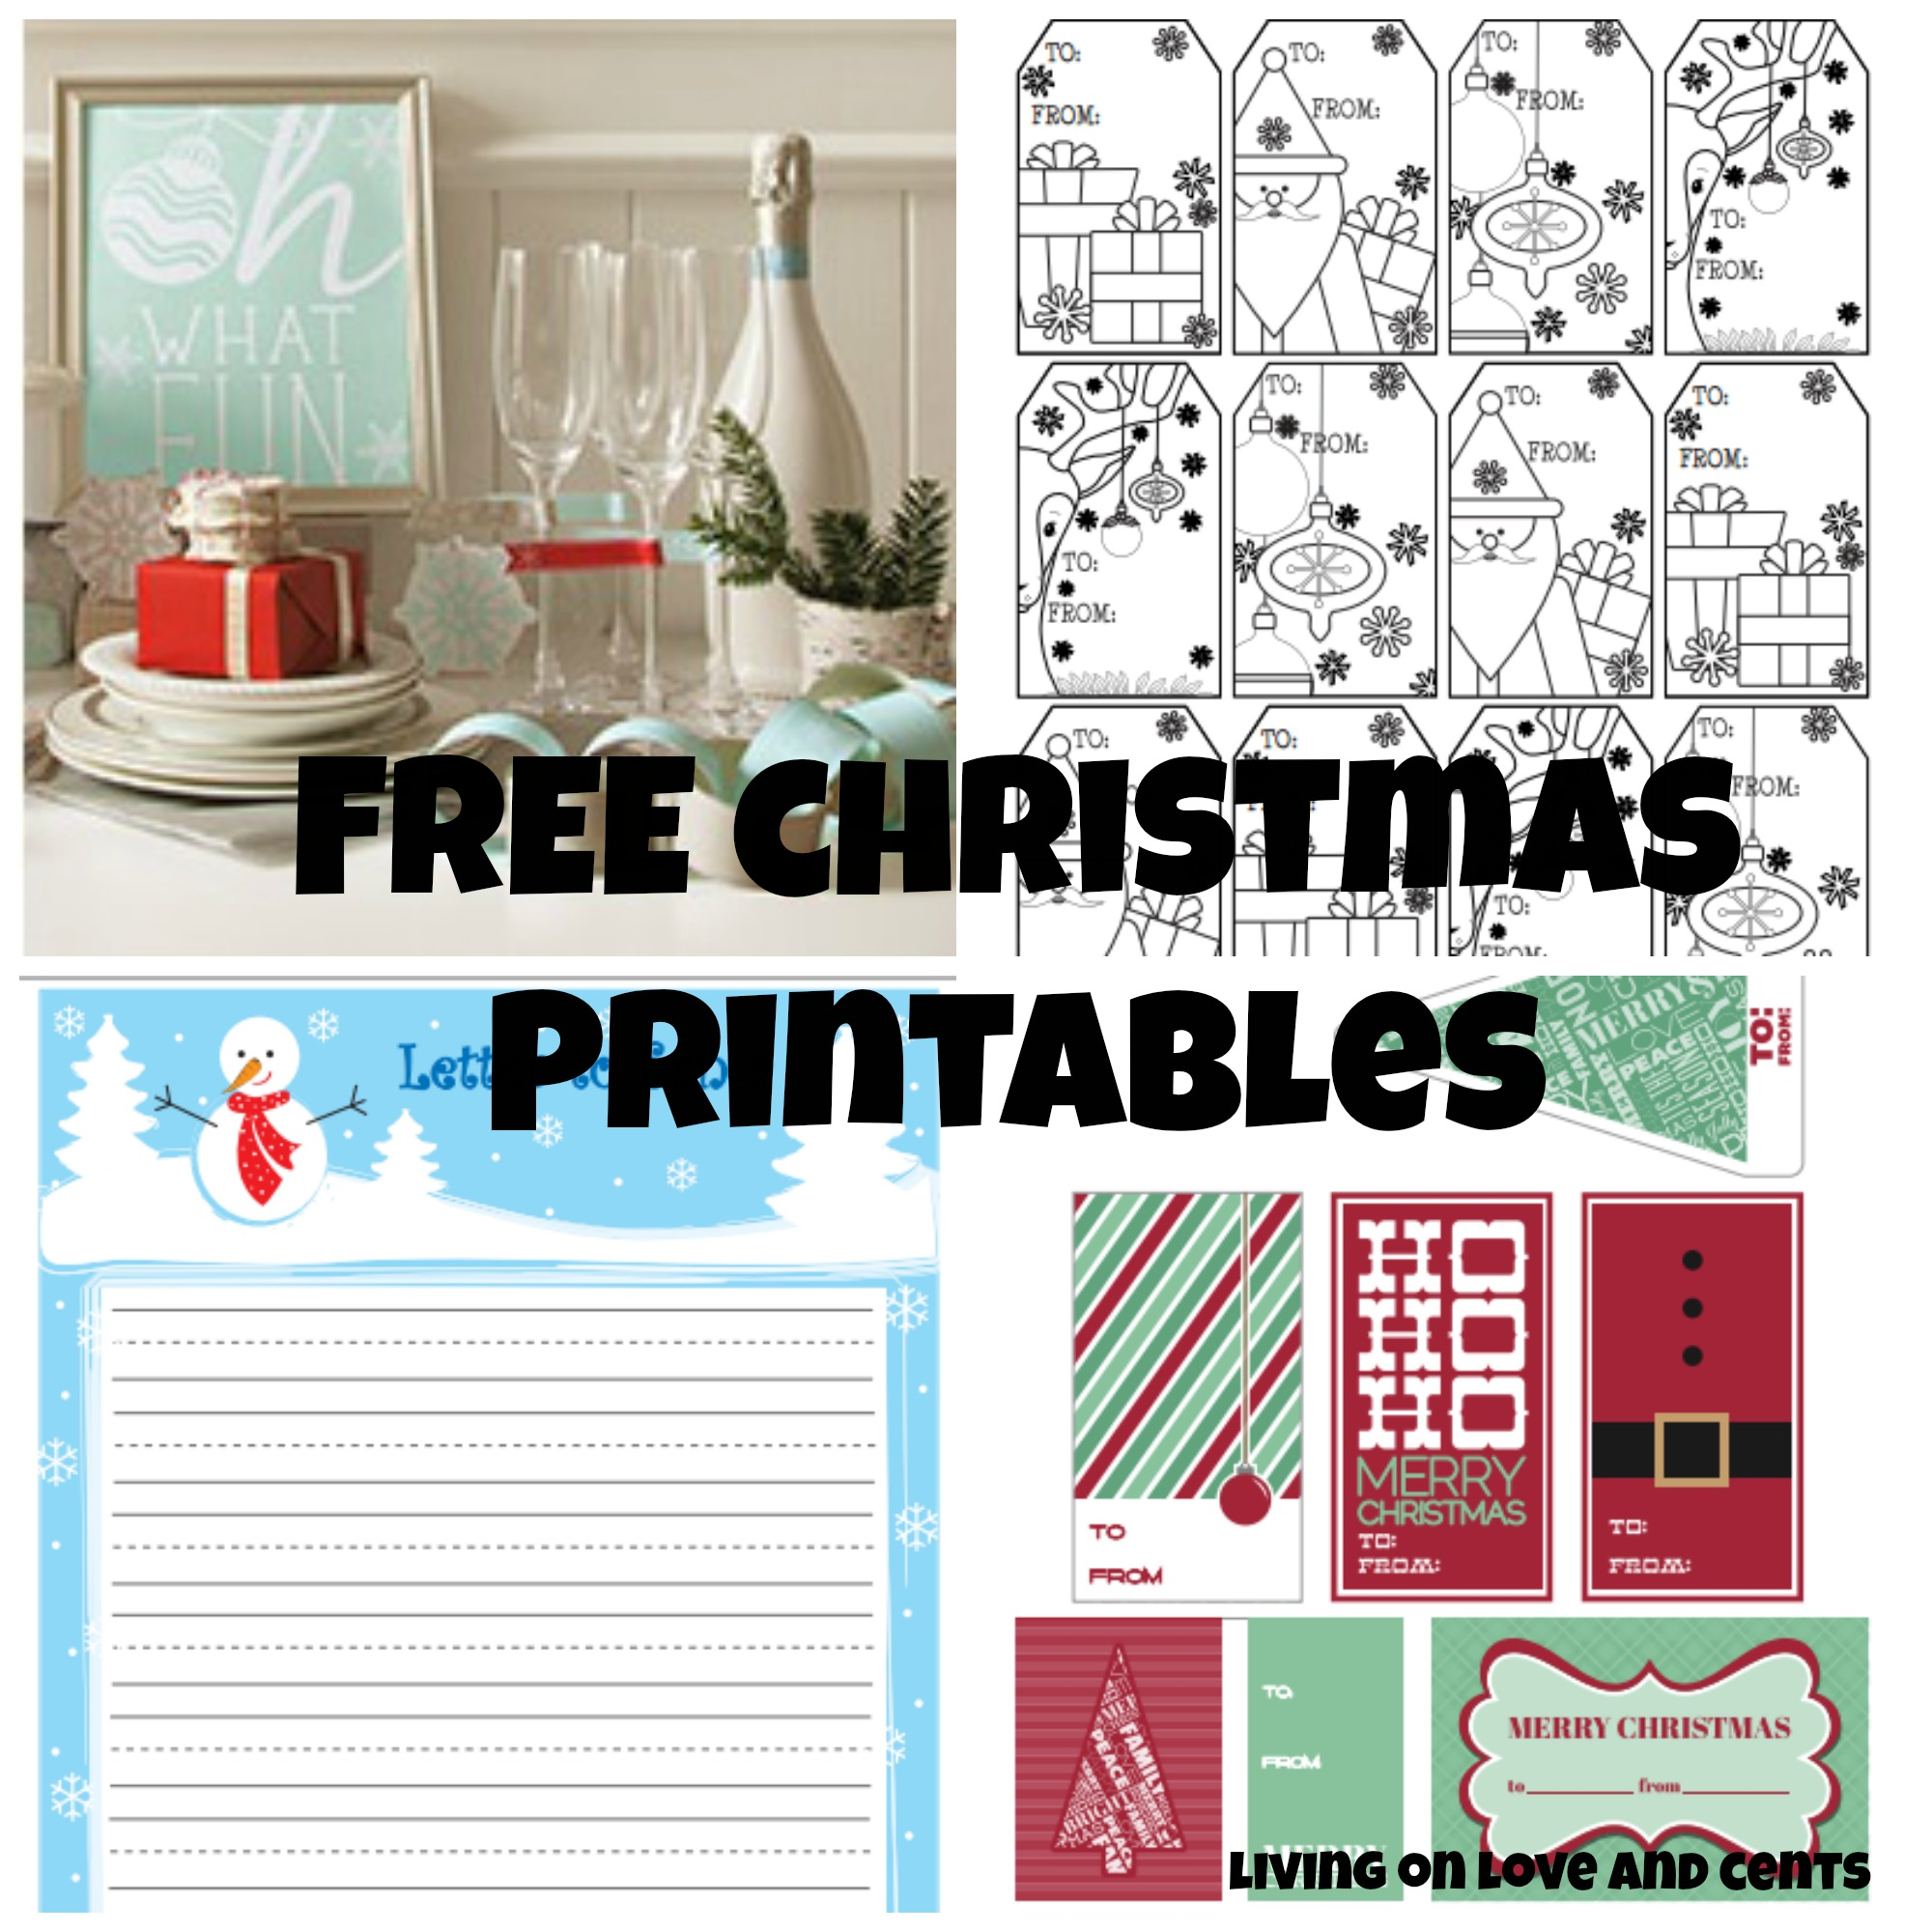 Free Christmas Printables: Gift Tags, Party Decor And Letter To Santa